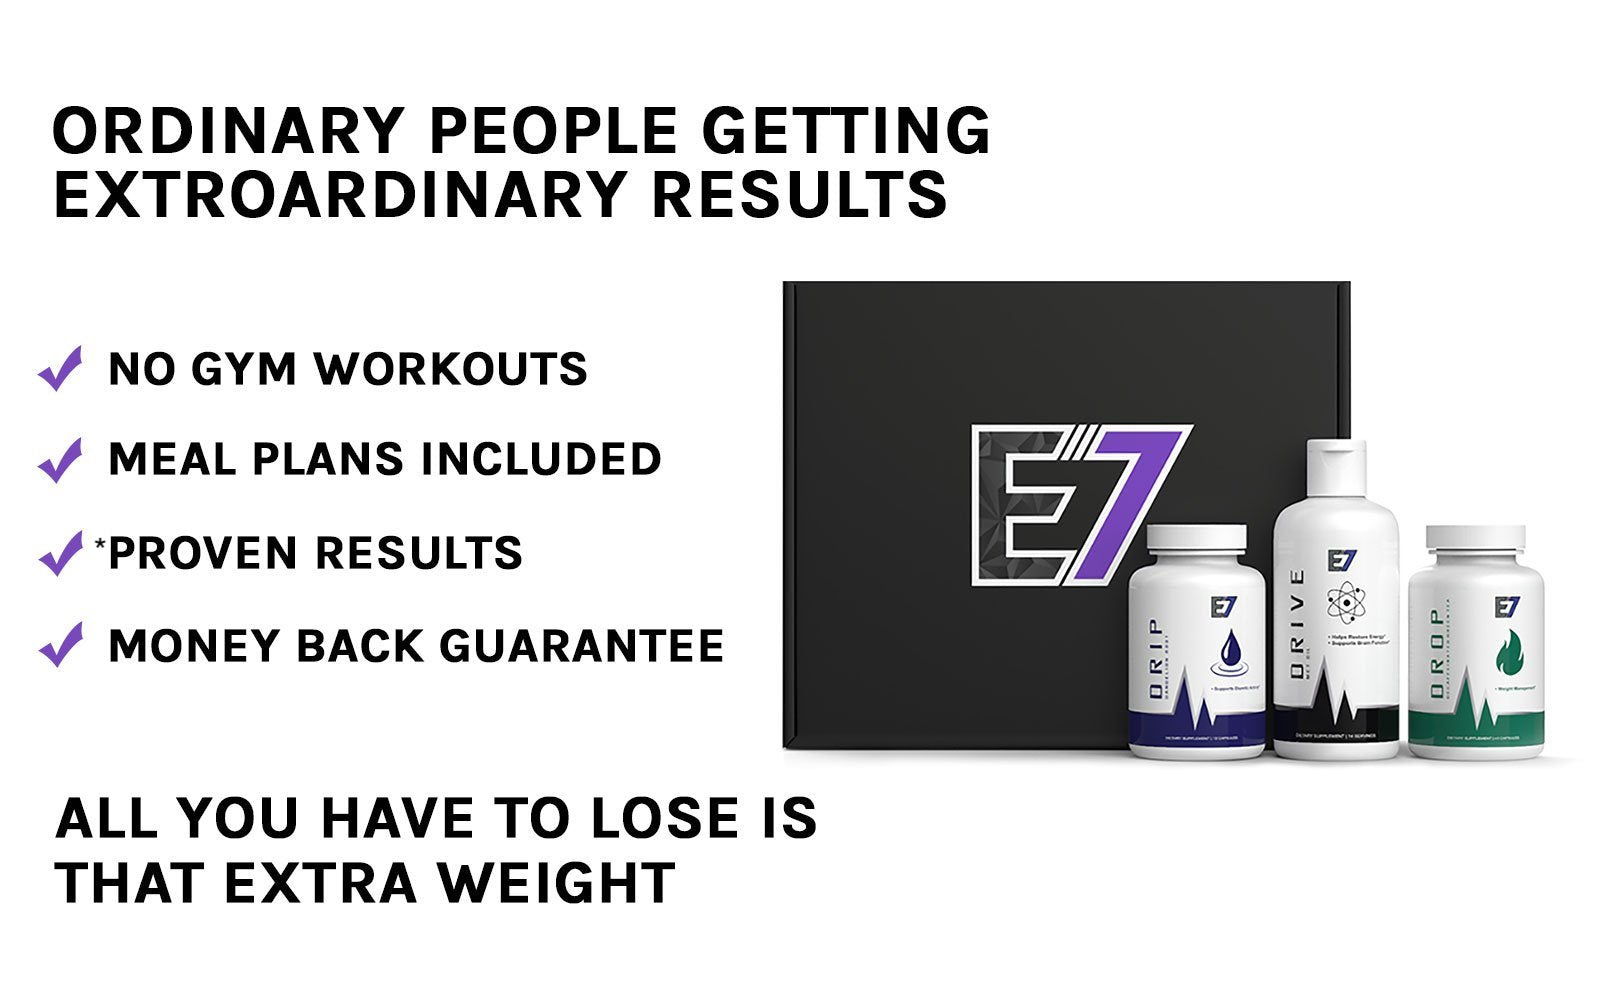 E7 Program Accelerated Weight Loss Program With Proven Results